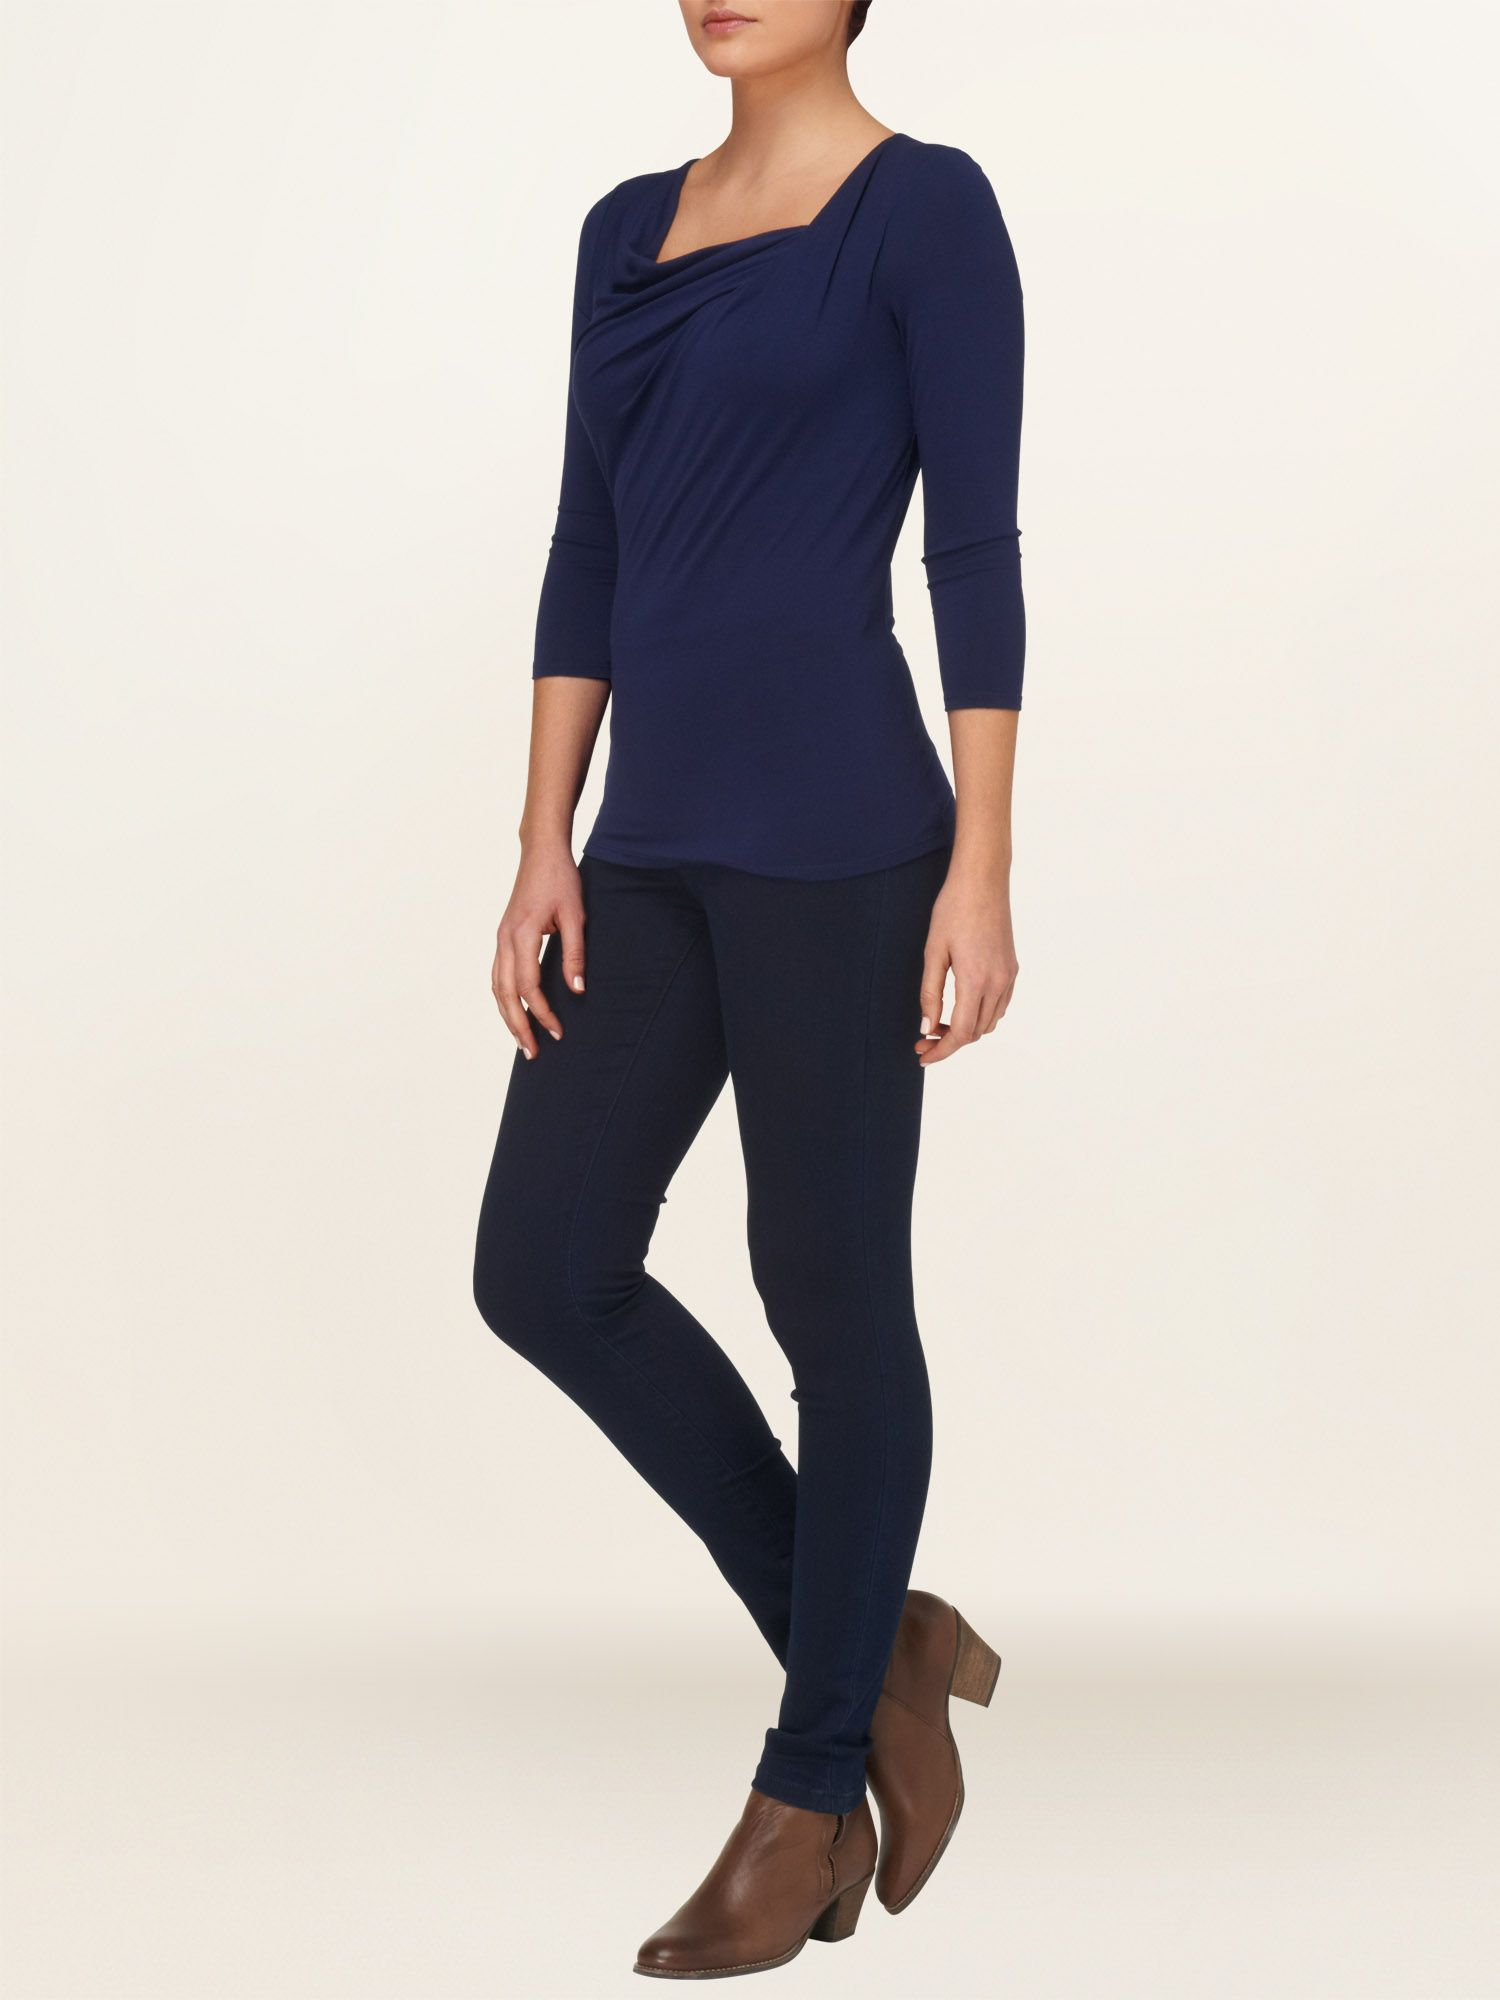 Lara cowl neck top